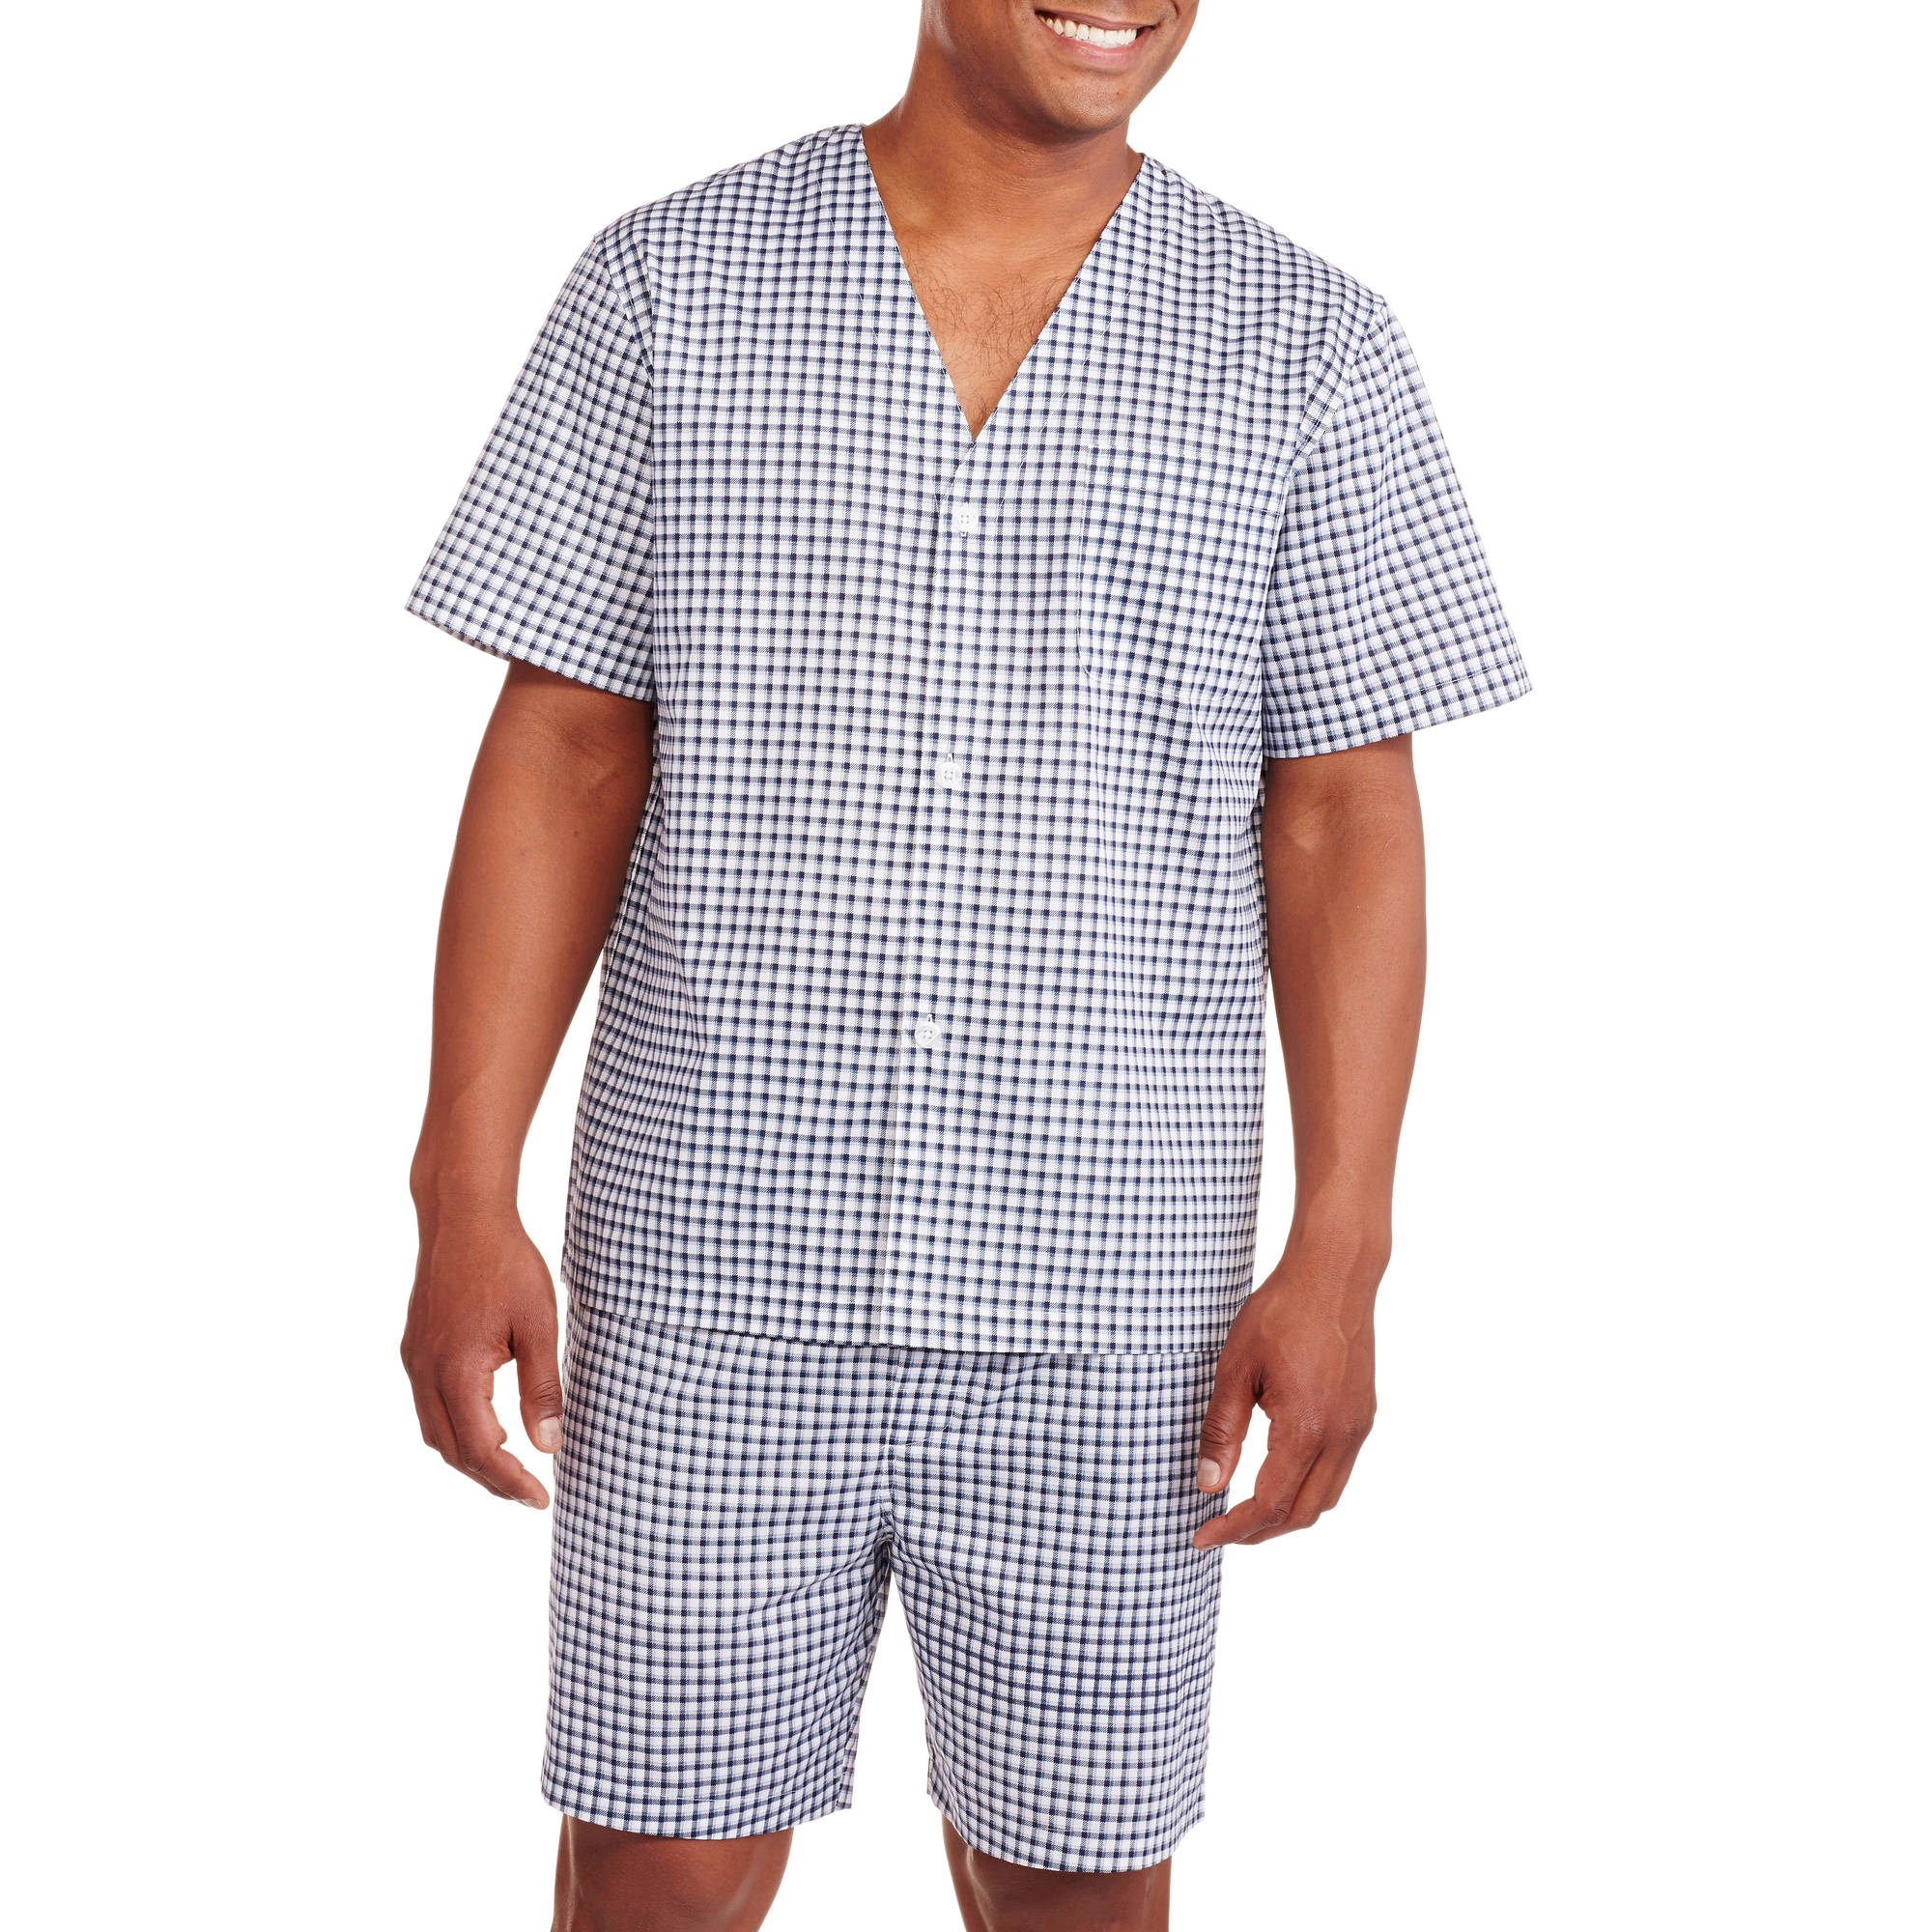 Fruit of the Loom Big Men's Short Sleeve Knee Length Pant Print Pajama